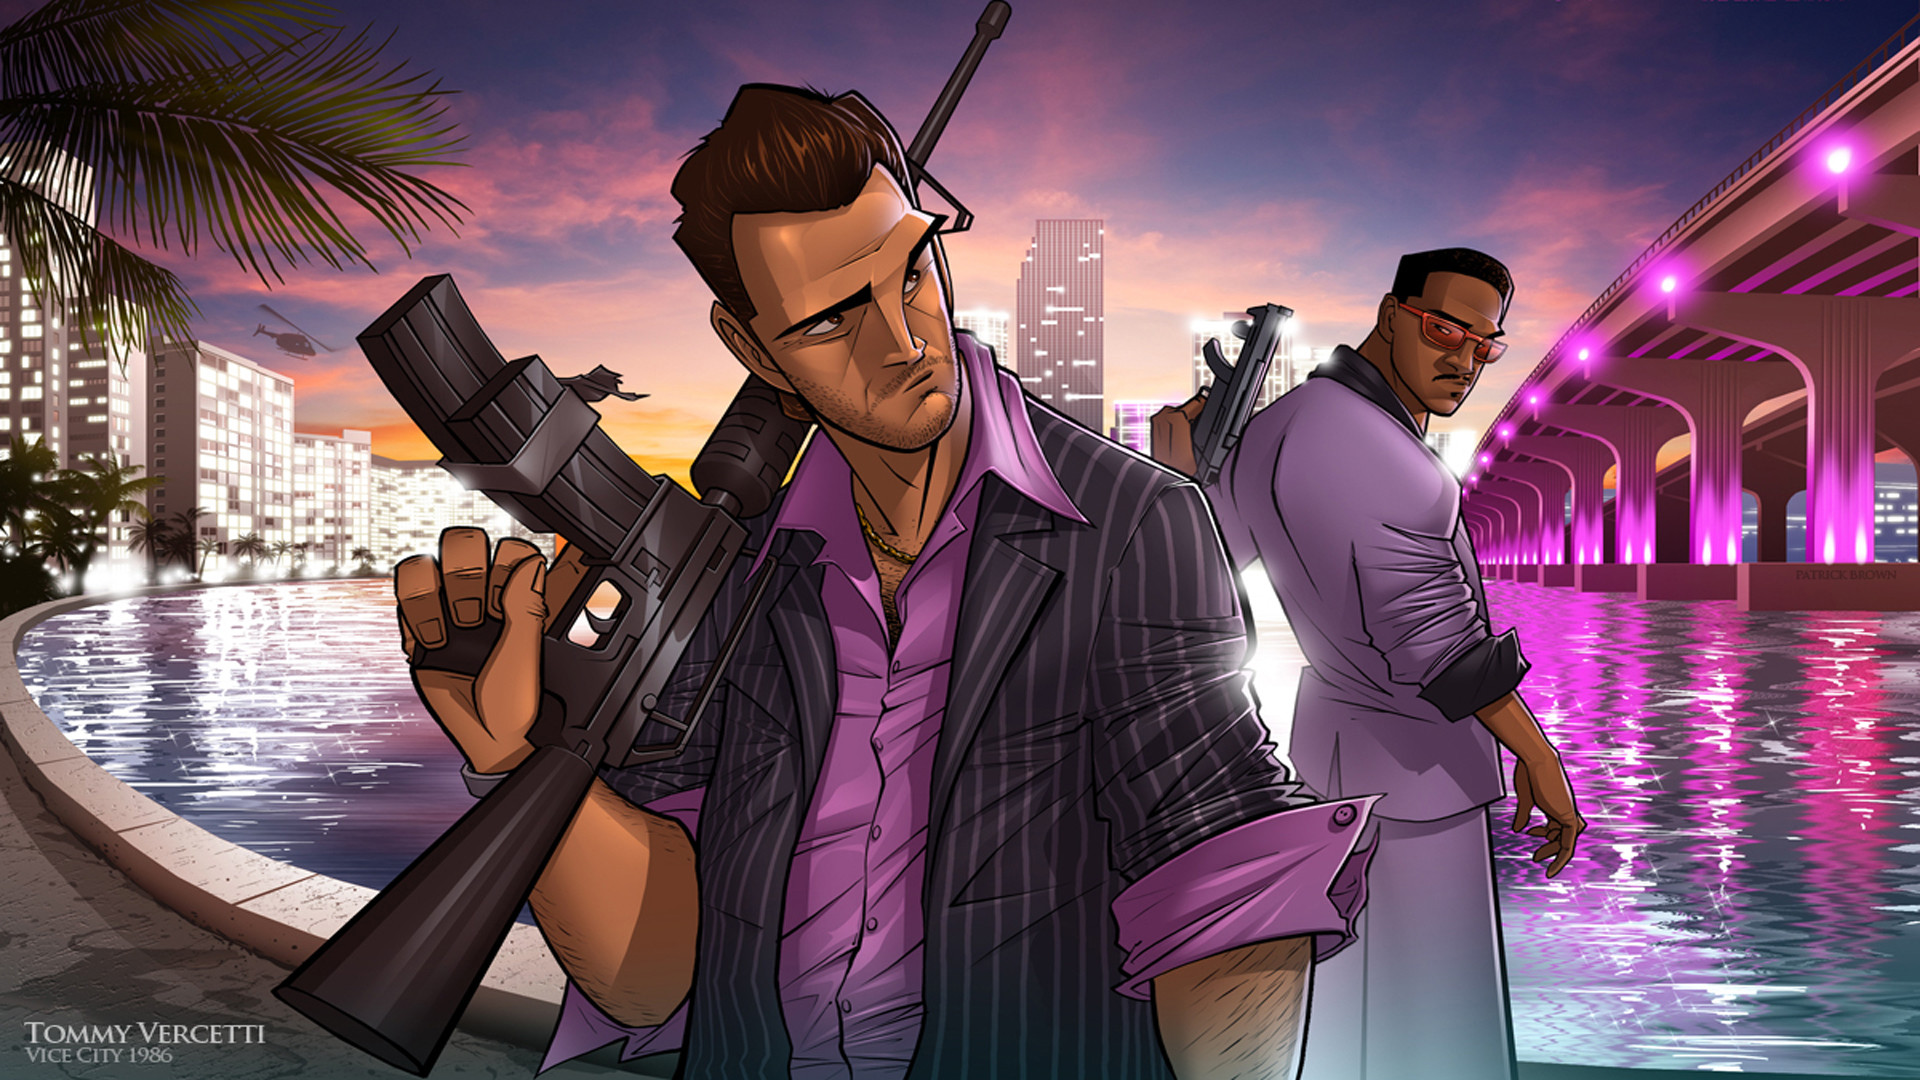 1920x1080  Wallpaper tommy vercetti, grand theft auto, vice city, gta,  patrick brown